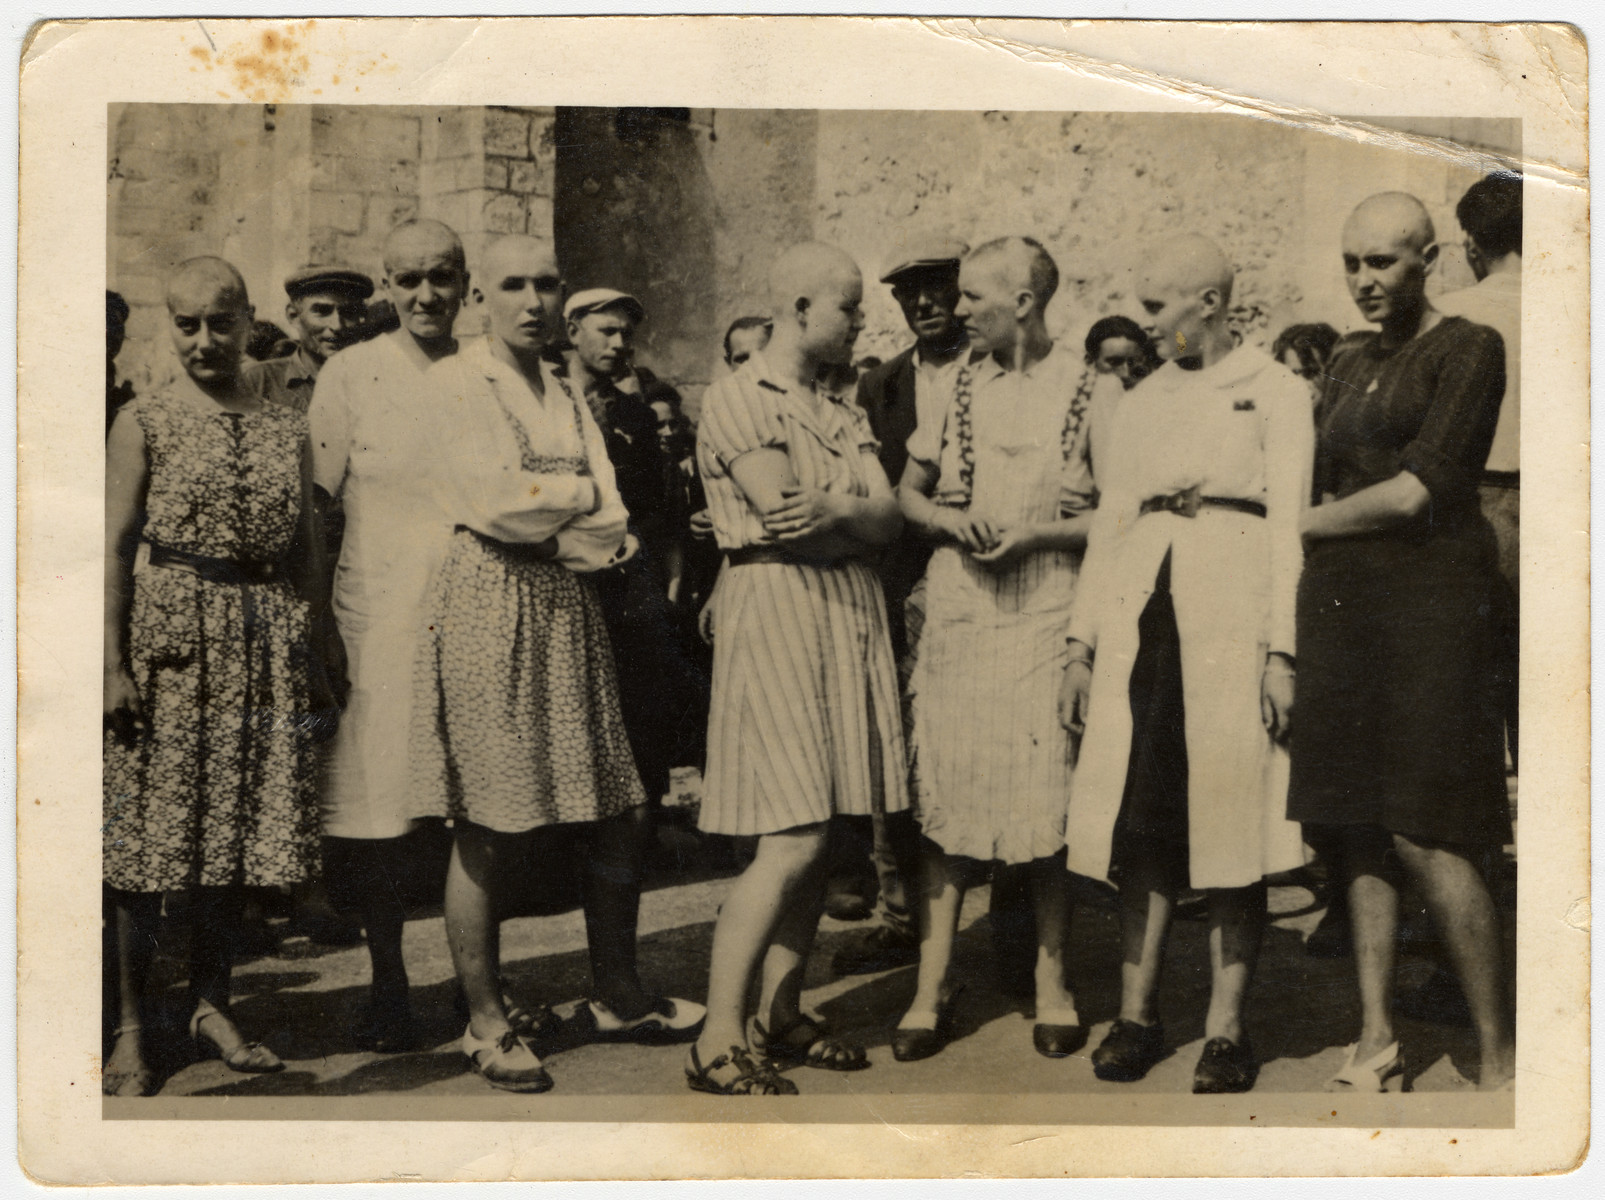 Women accused of collaborating with the Nazis are publicly humiliated by having their heads forcibly shaved after the war in either France or Belgium.  Note: Similar displays took place in both France and Belgium and there is no original documentation indicating where this photo was taken.